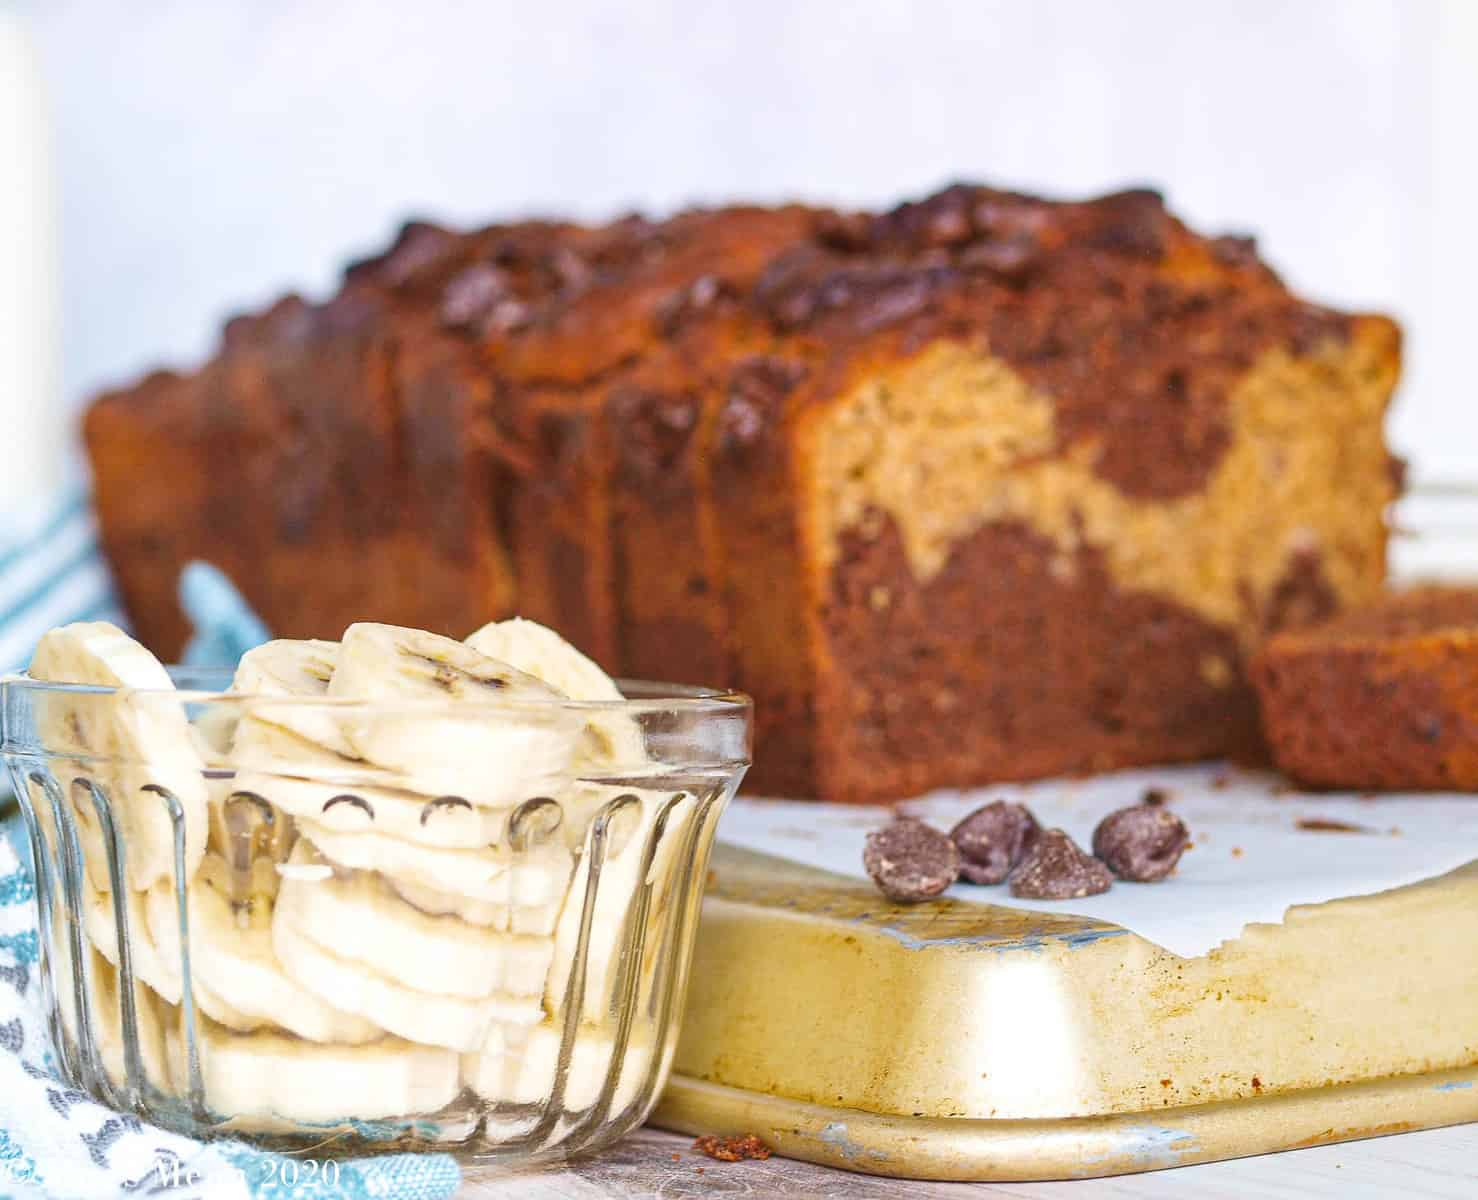 A sliced loaf of chocolate peanut butter banana bread on a gold pan with a dish of sliced bananas and chocolate chips next to it